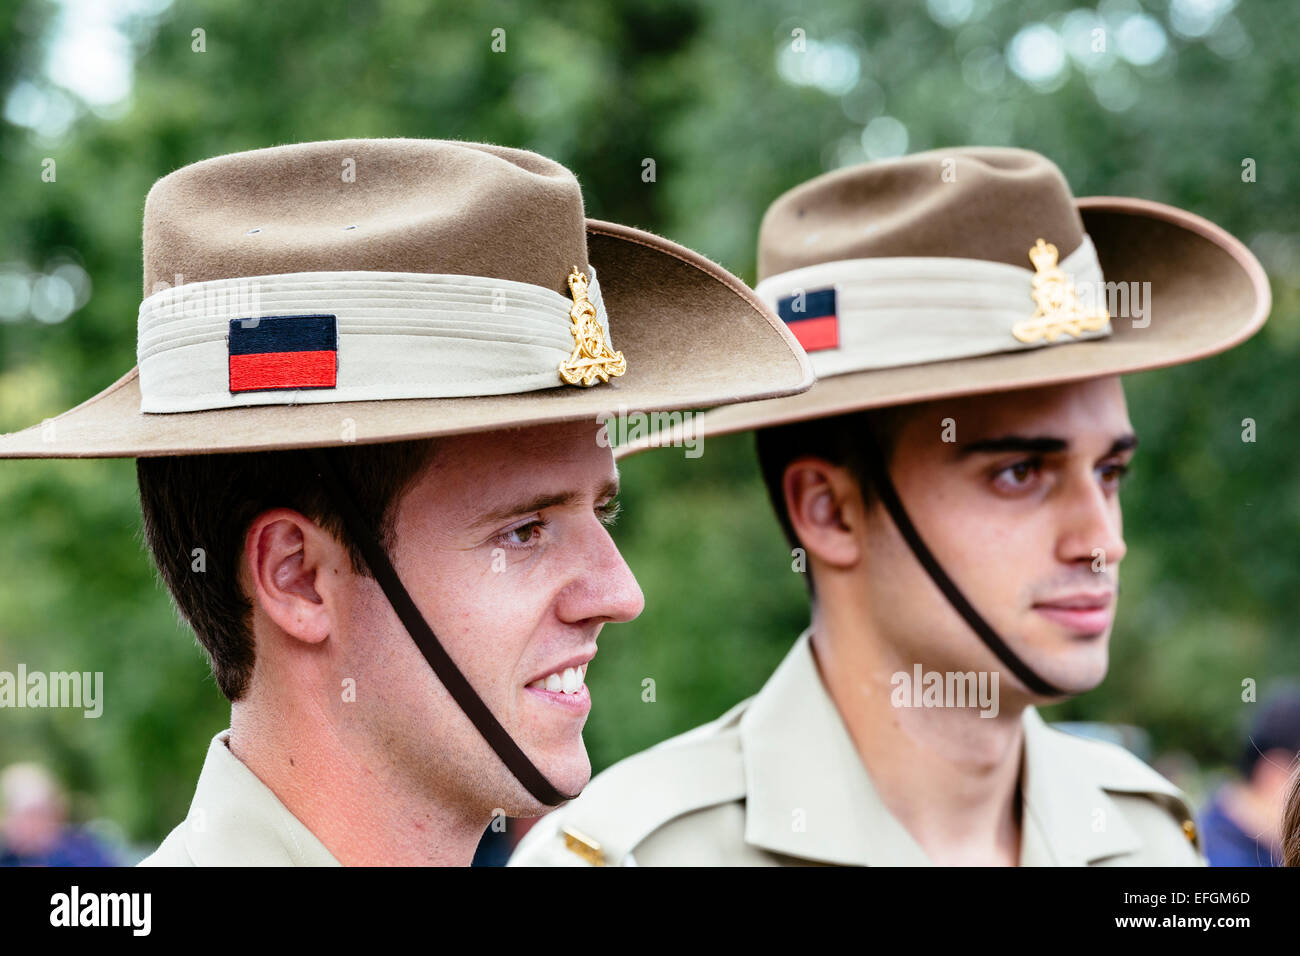 Two Australian soldiers mingling with crowds at Shrine of Remembrance, Melbourne, following Australia Day 21 Gun - Stock Image